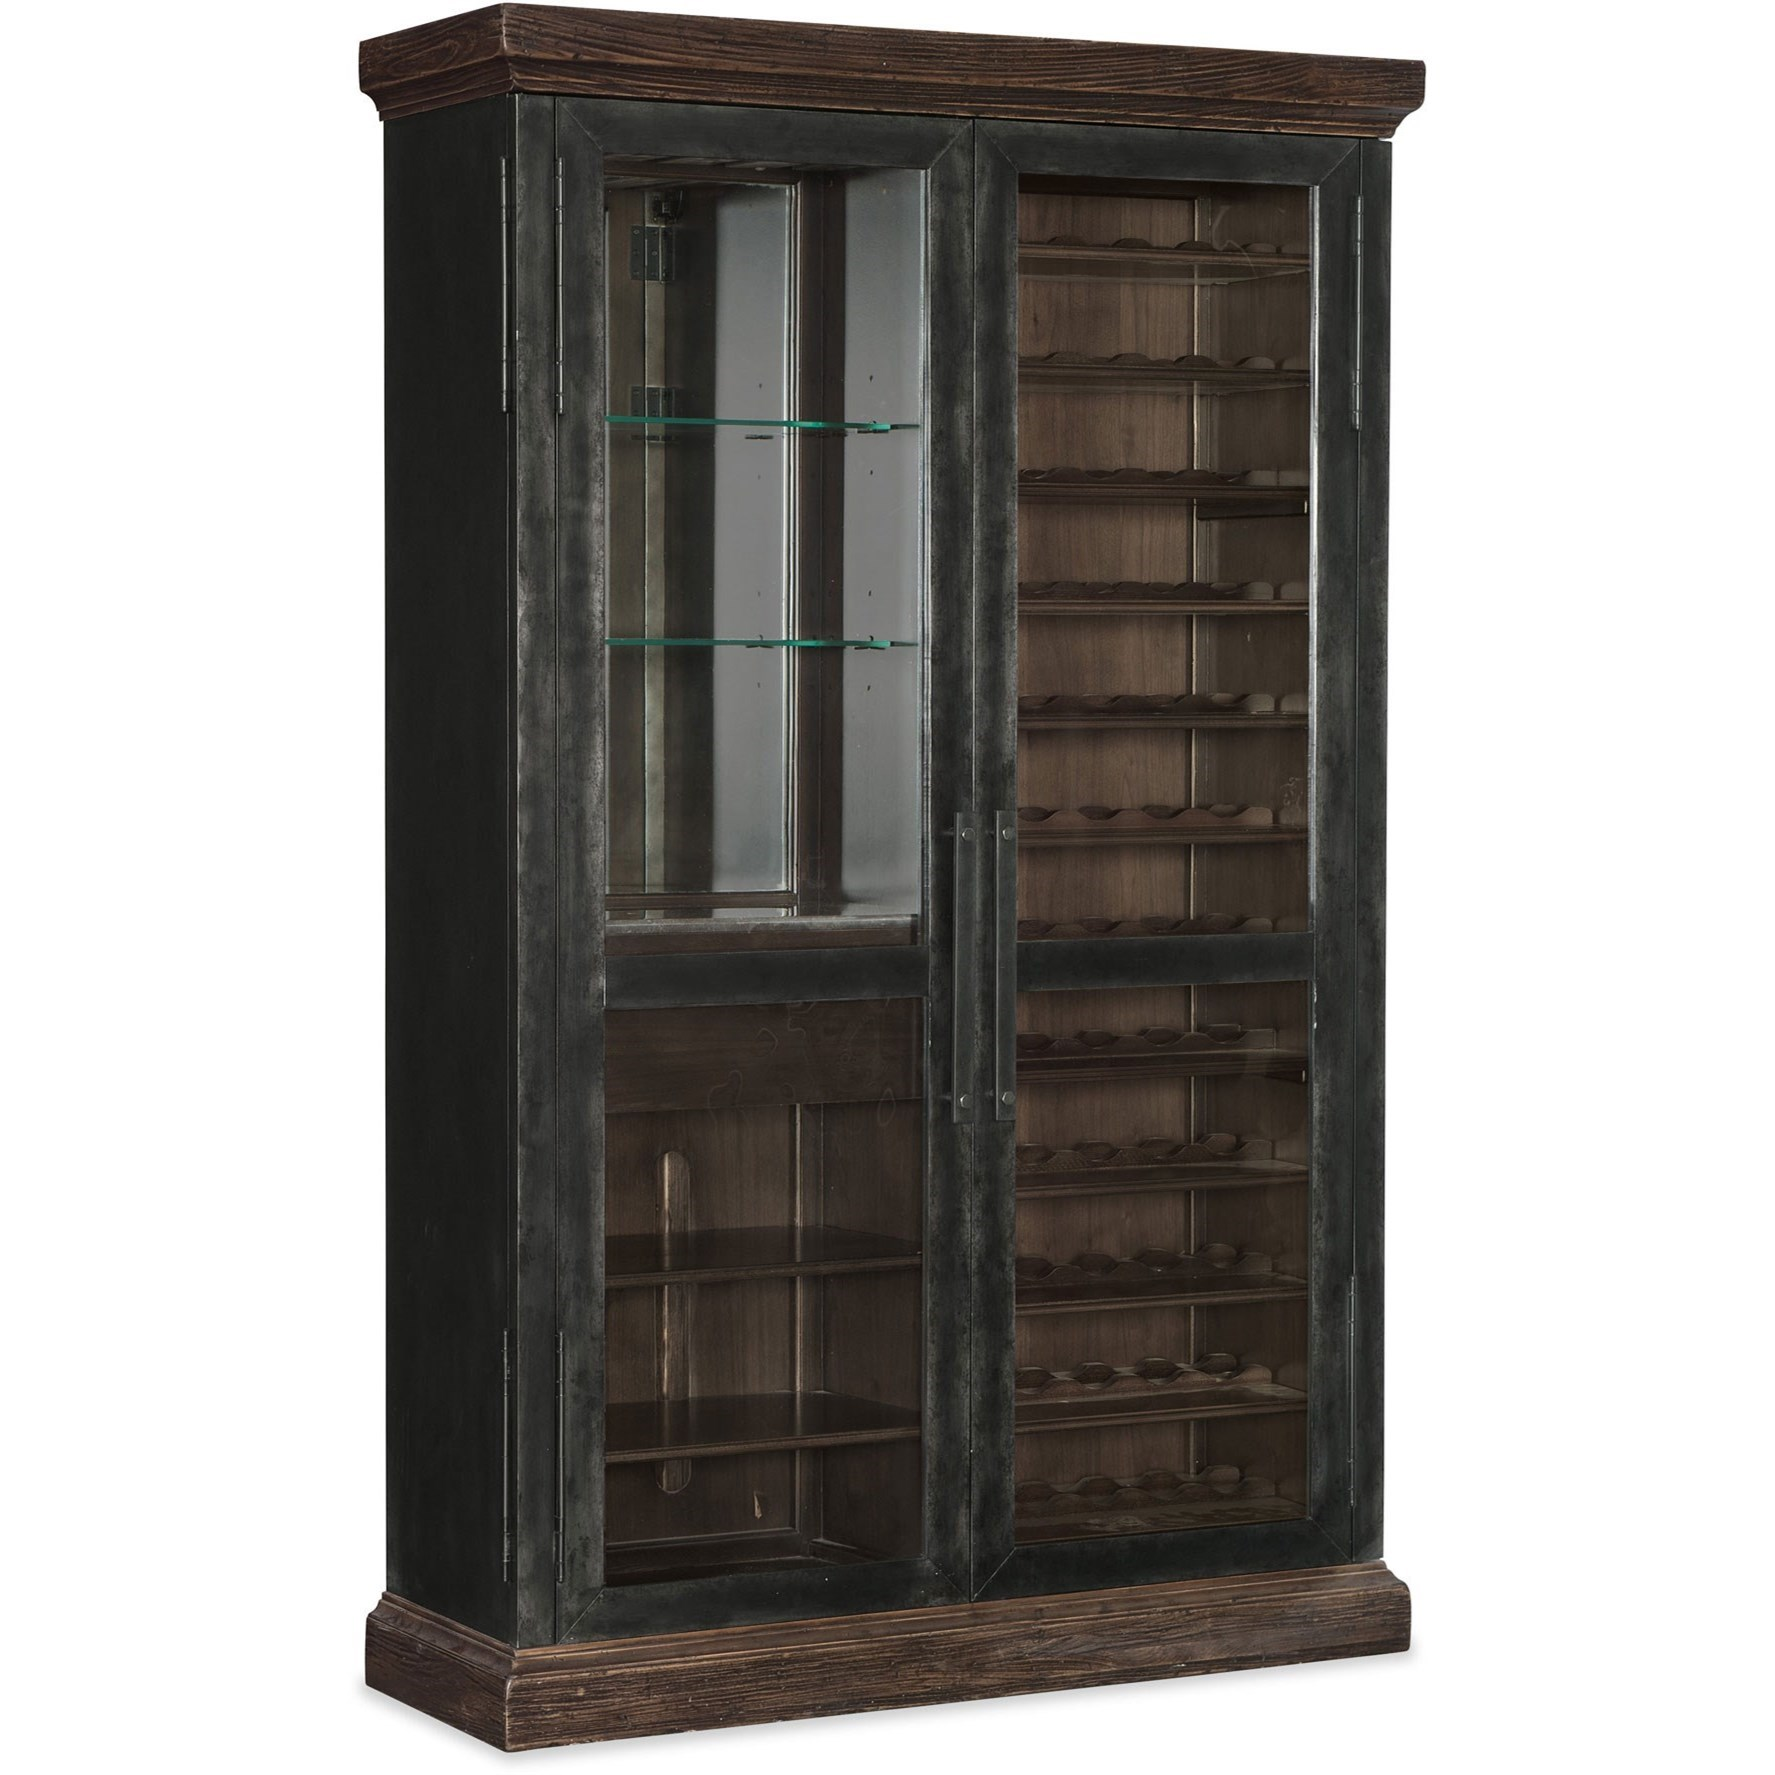 American Life - Roslyn County Wine Cabinet by Hooker Furniture at Baer's Furniture